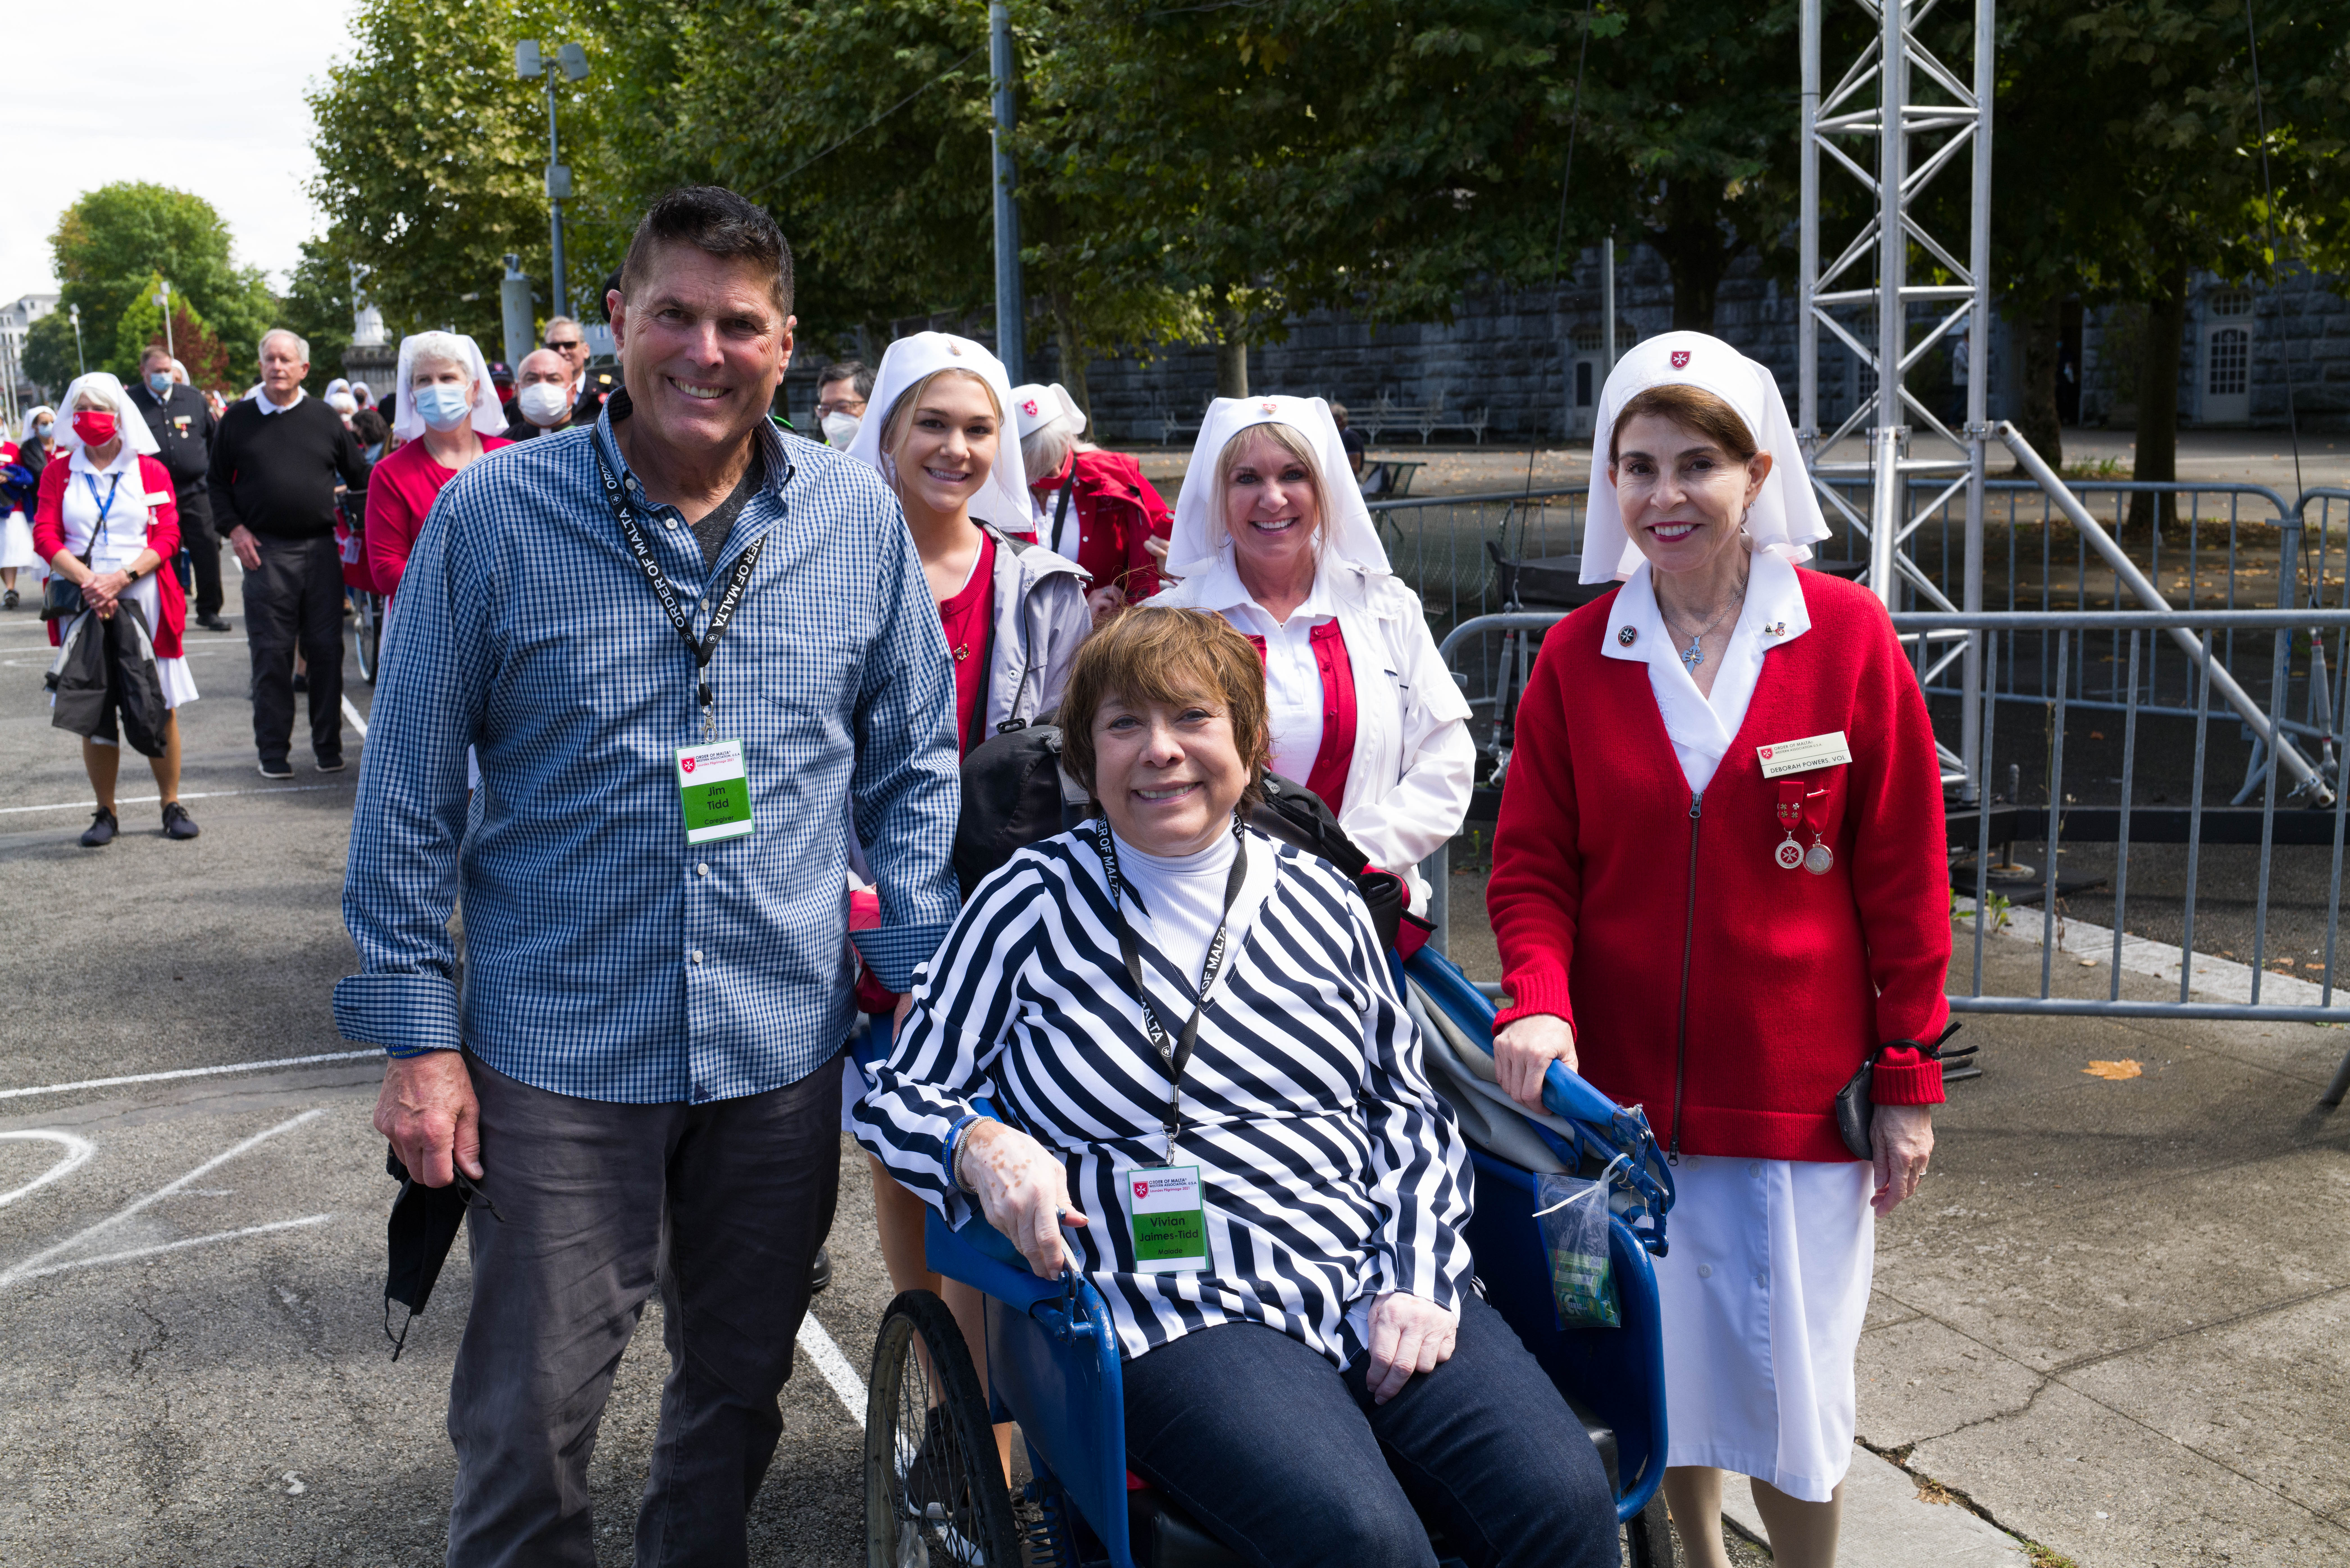 Malade Vivian Jaimes-Tidd (in voiture) and her husband Jim Tidd (standing) while attending the 2021 Lourdes Pilgrimage with The Order of Malta Western Association USA (9/1/2021-9/8/2021). Also featured in the foreground in uniform (if needed) are Deborah Powers, Jacqueline Grisotti, and Emilia Grisotti. Photo credit Western Association USA of The Order of Malta.